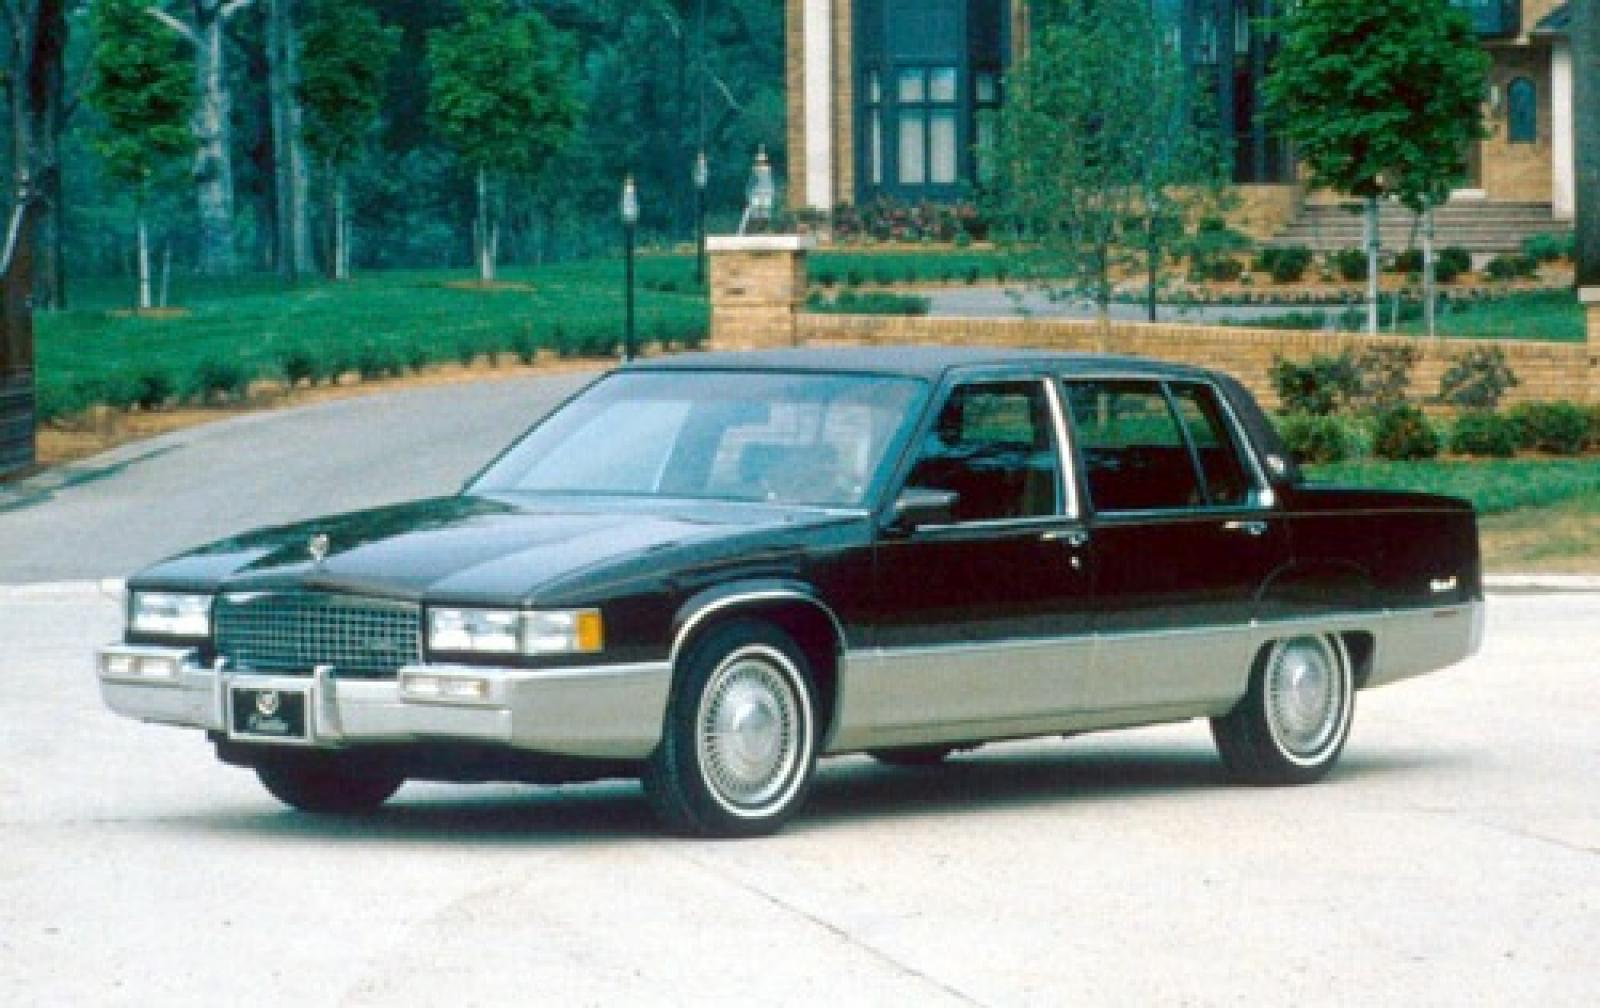 1990 cadillac fleetwood information and photos zombiedrive. Cars Review. Best American Auto & Cars Review